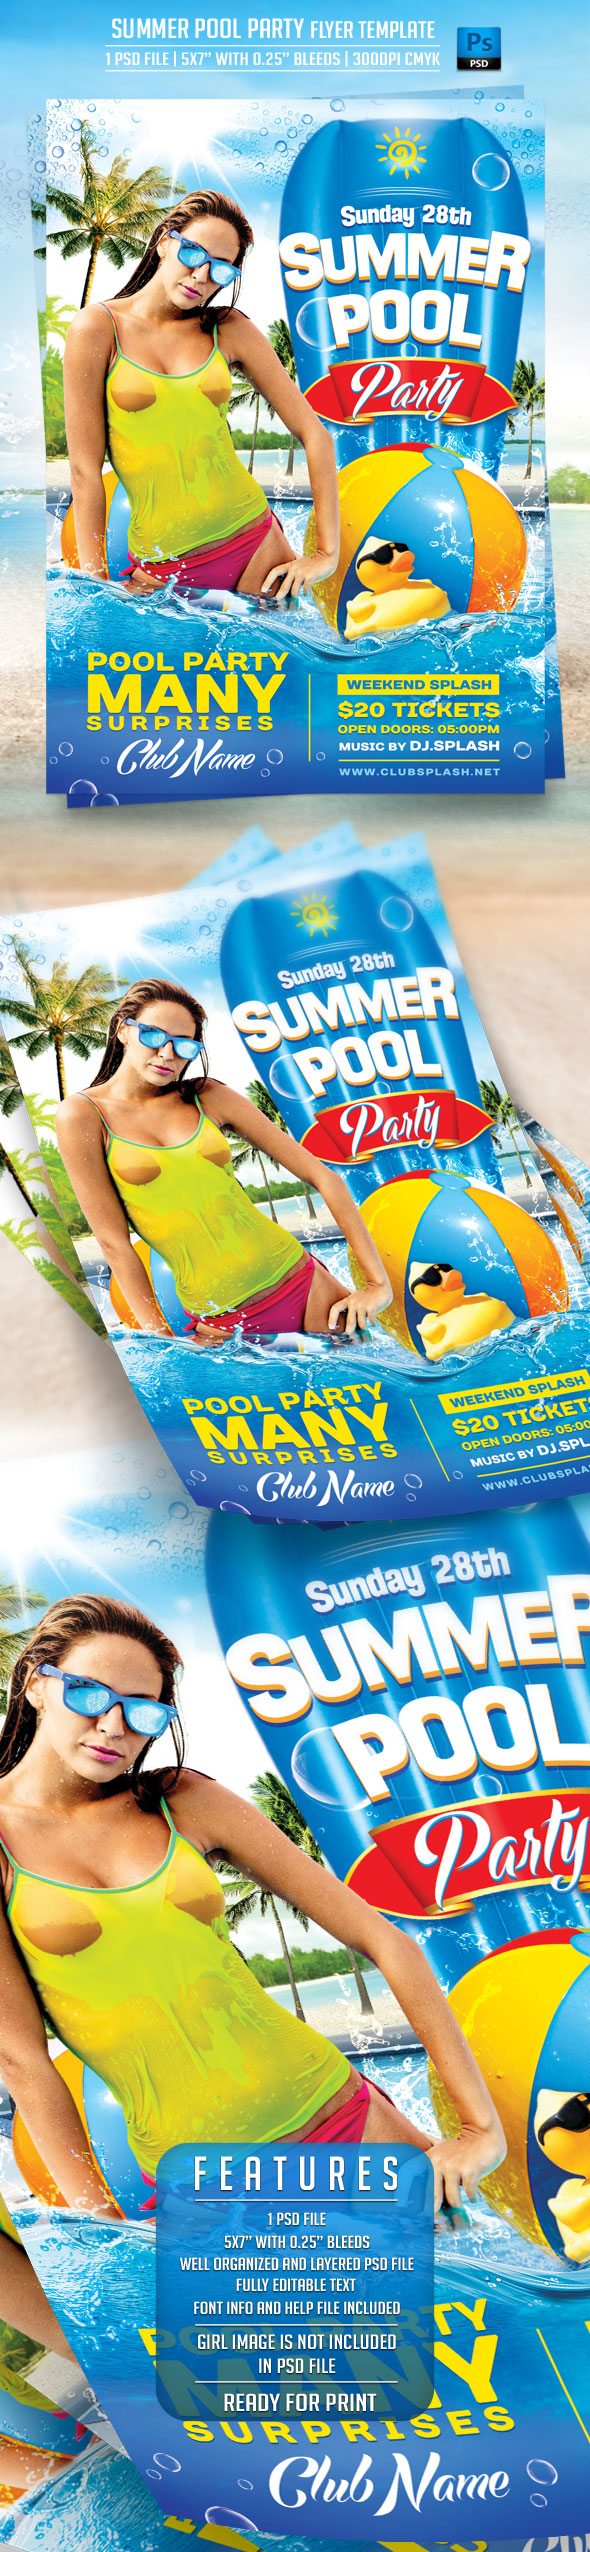 ... Summer Pool Party Flyer Template By BriellDesign